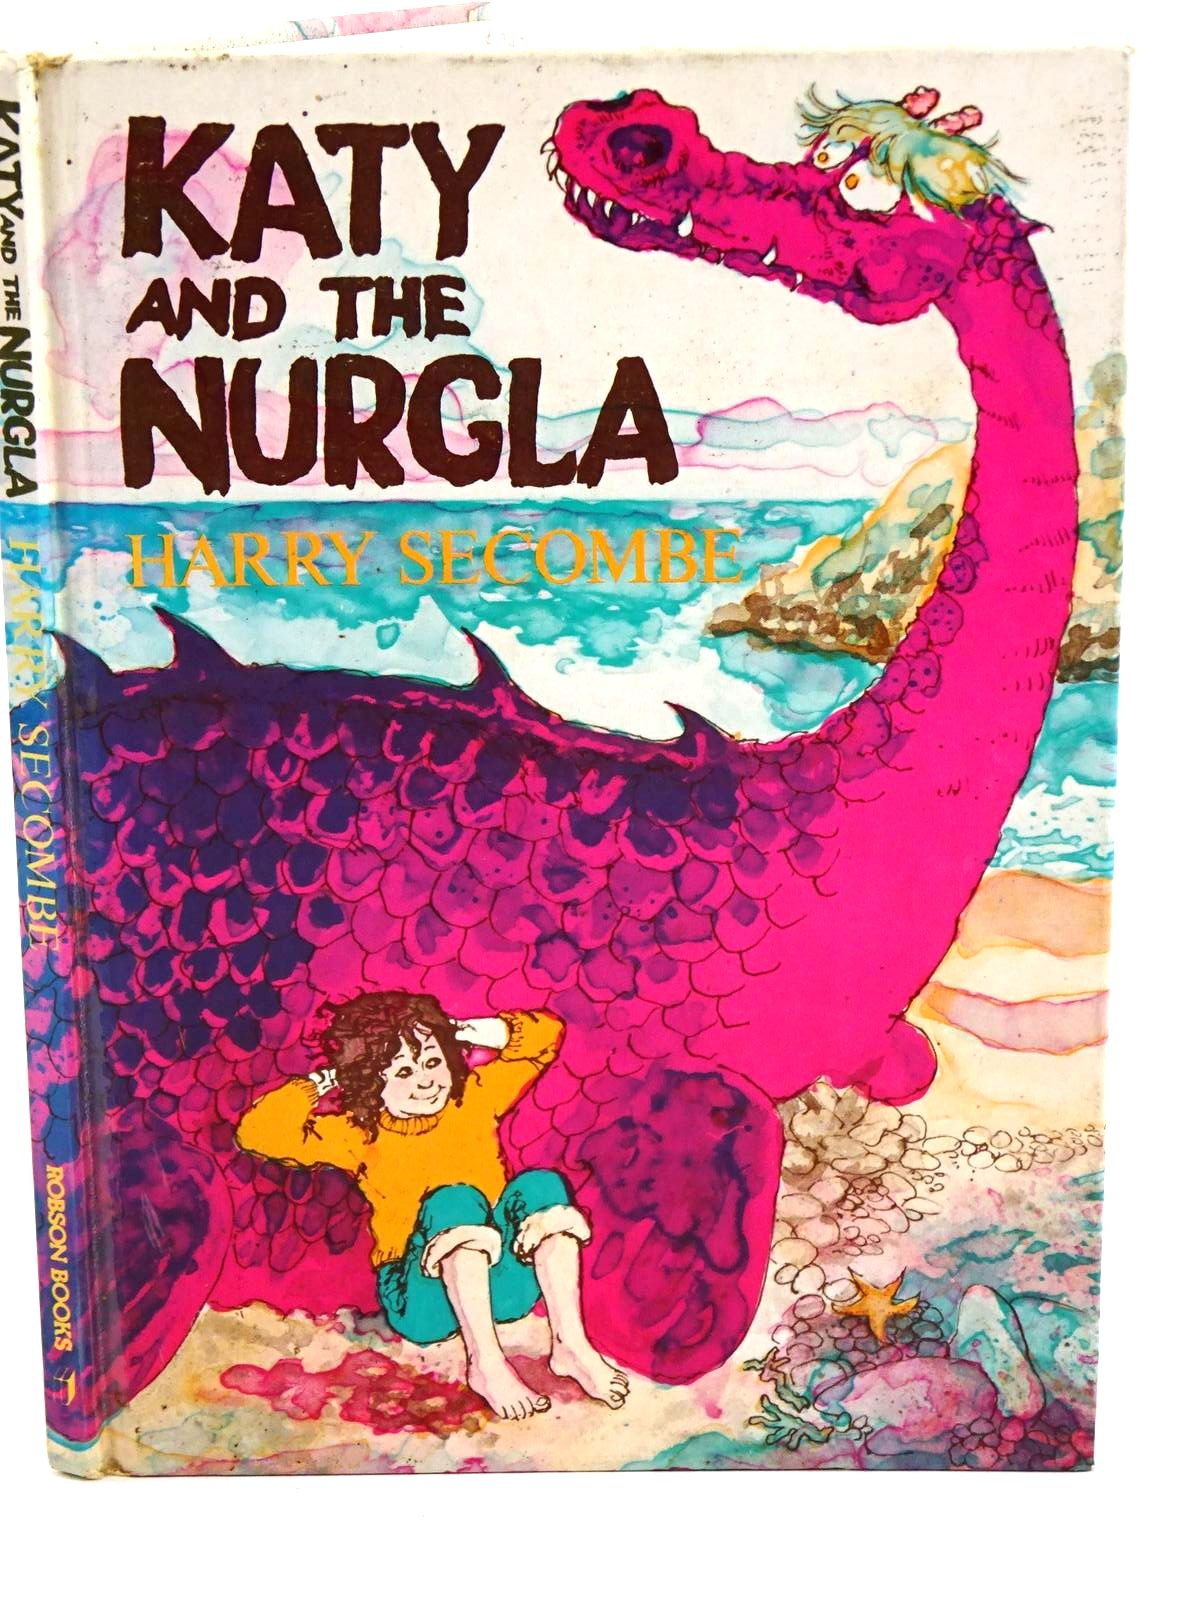 Photo of KATY AND THE NURGLA written by Secombe, Harry illustrated by Lamont, Priscilla published by Robson Books (STOCK CODE: 1318211)  for sale by Stella & Rose's Books